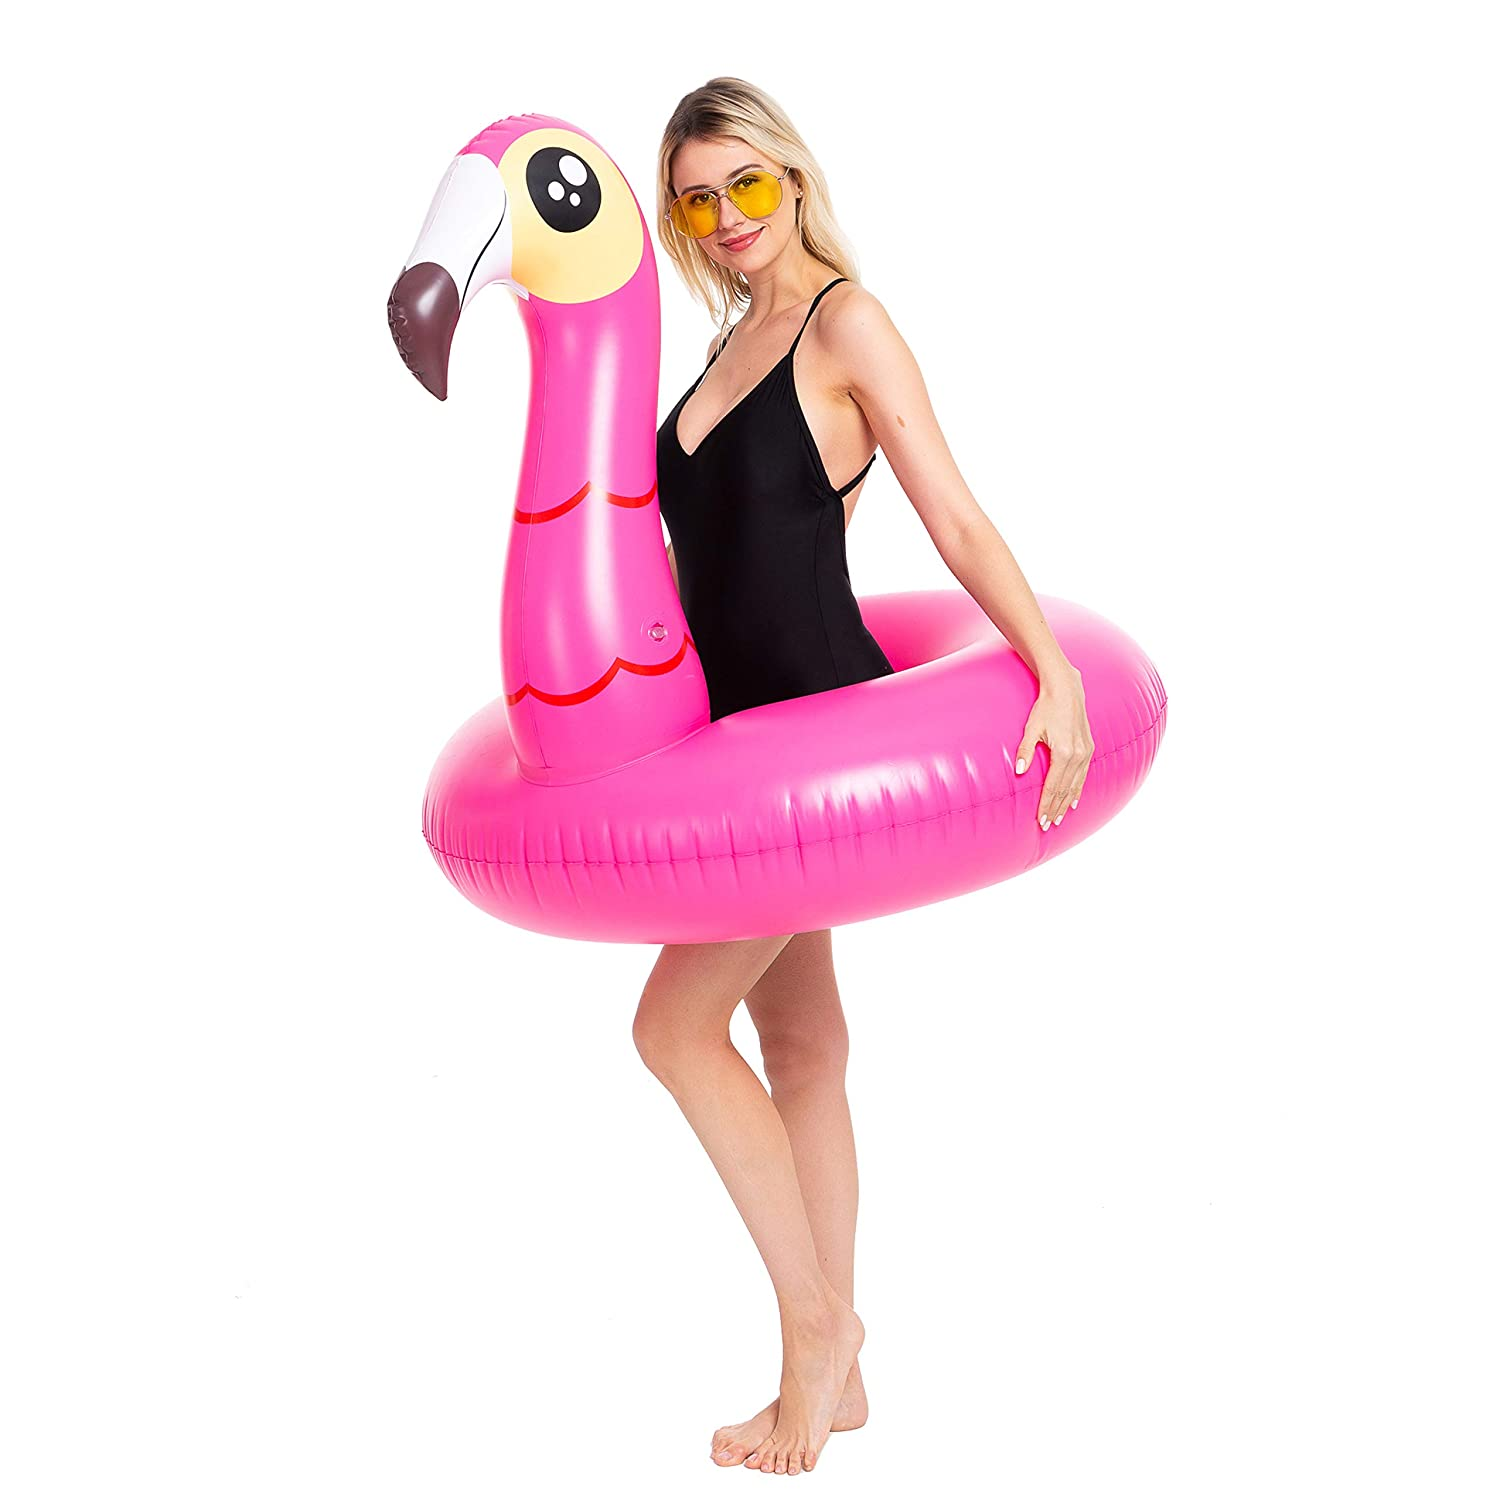 Summer Pool Raft Lounger for Adults /& Kids Inflates to Over 4ft. Wide JOYIN Inflatable Flamingo and Unicorn Pool Float 2 Pack Swim Party Toys Fun Beach Floaties